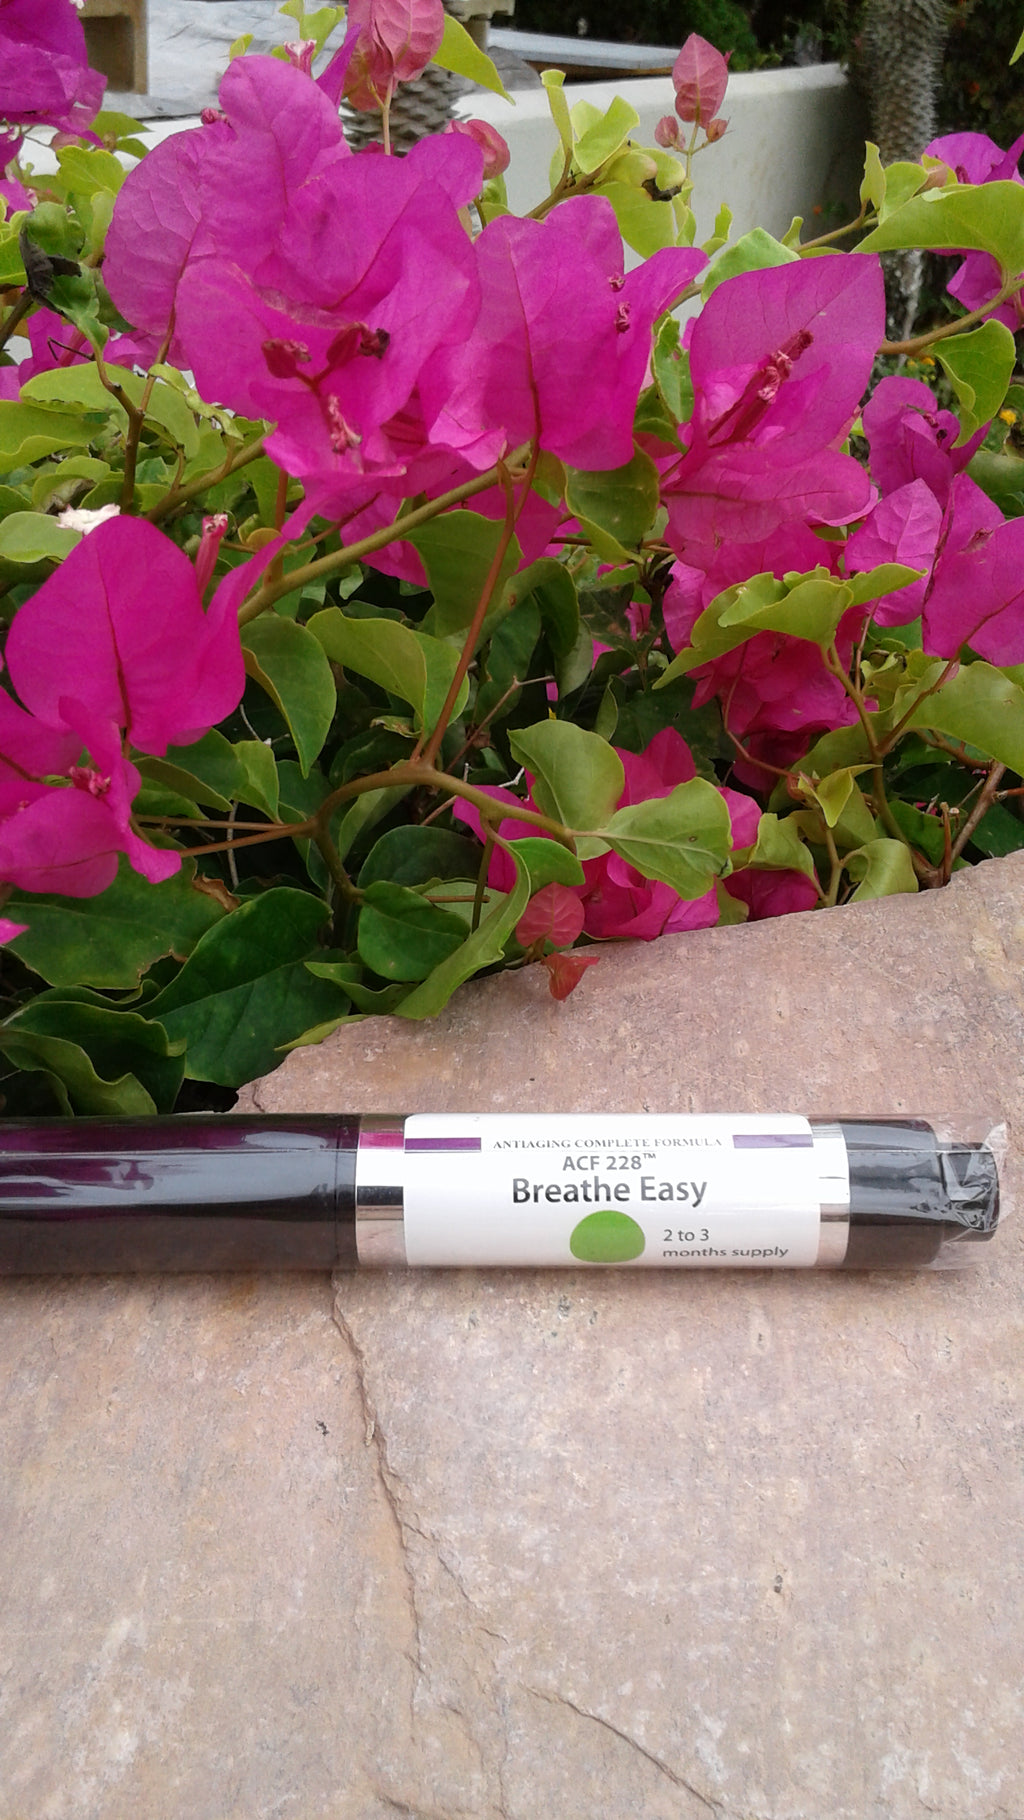 Breathe Easy inhaler efficient for resolving respiratory problems by preventing free radicals. Wholesale at $119